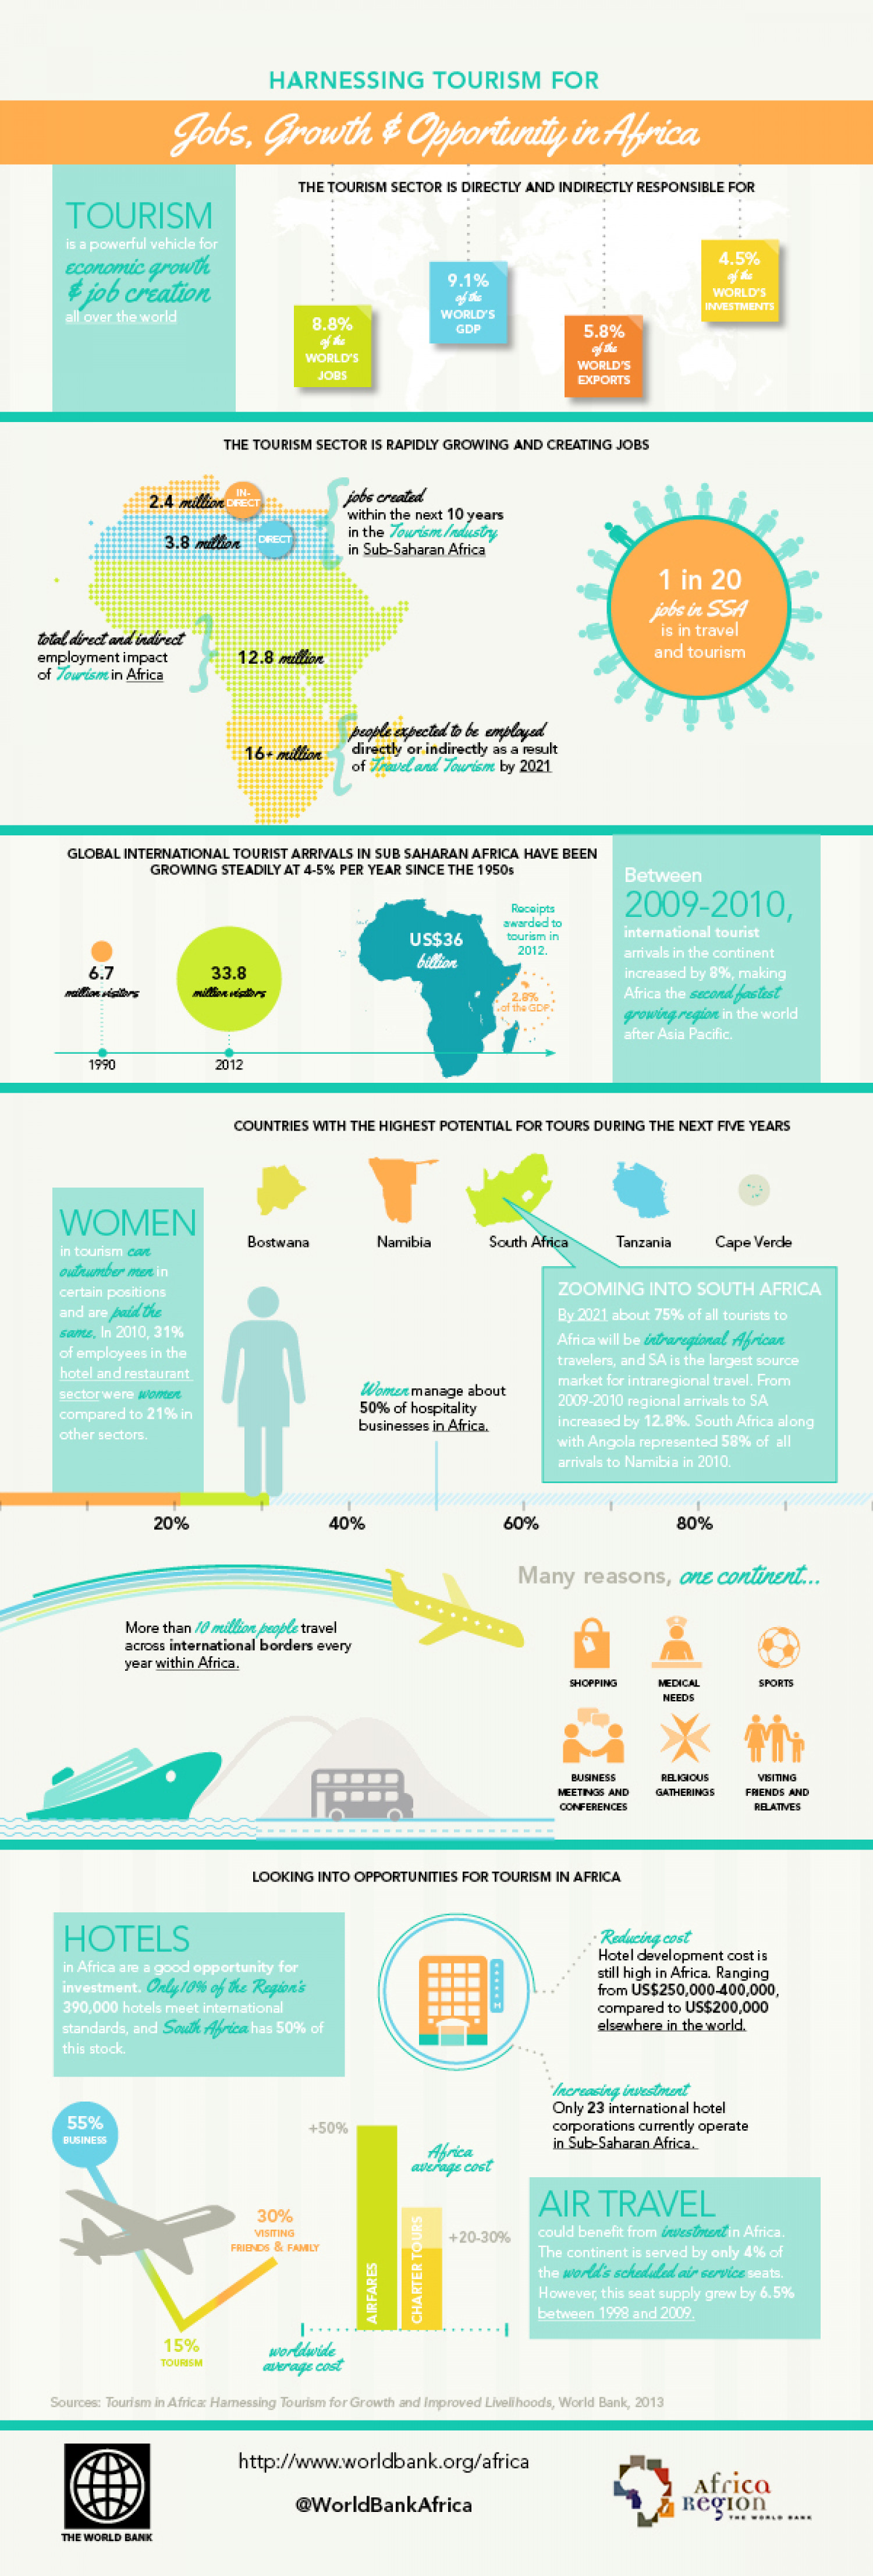 Tourism in Africa Infographic